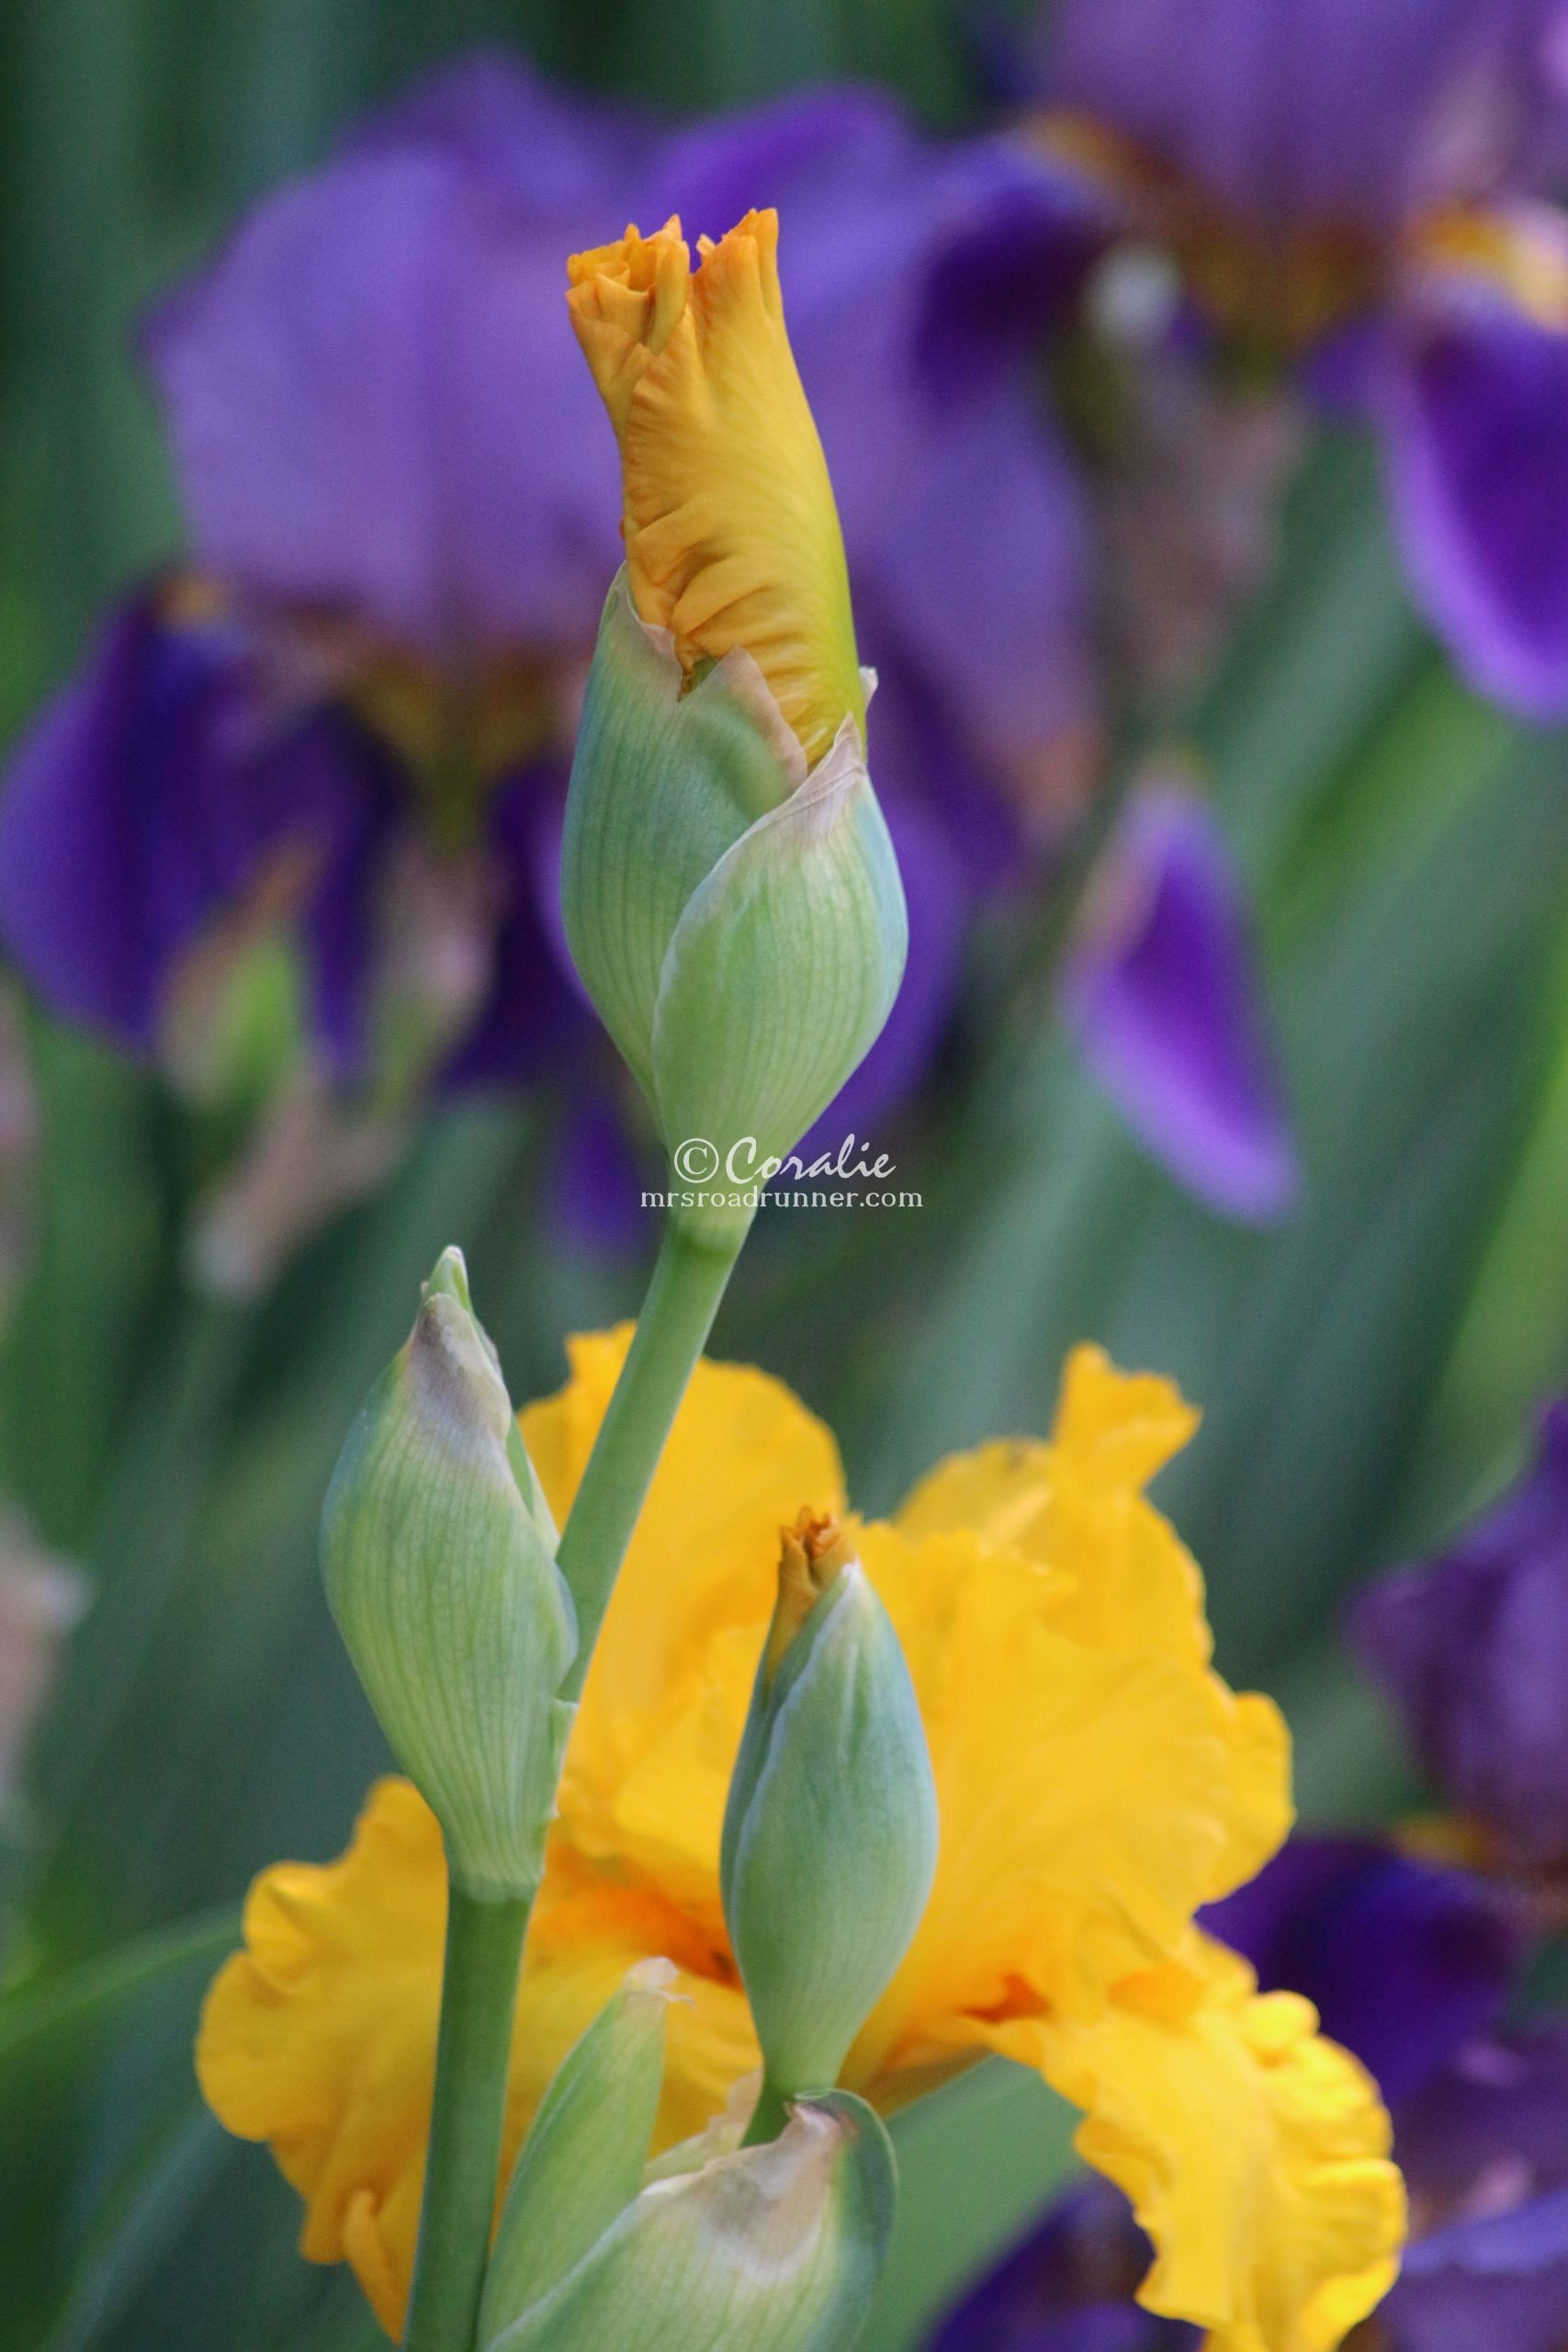 Iris Flowers Blooming